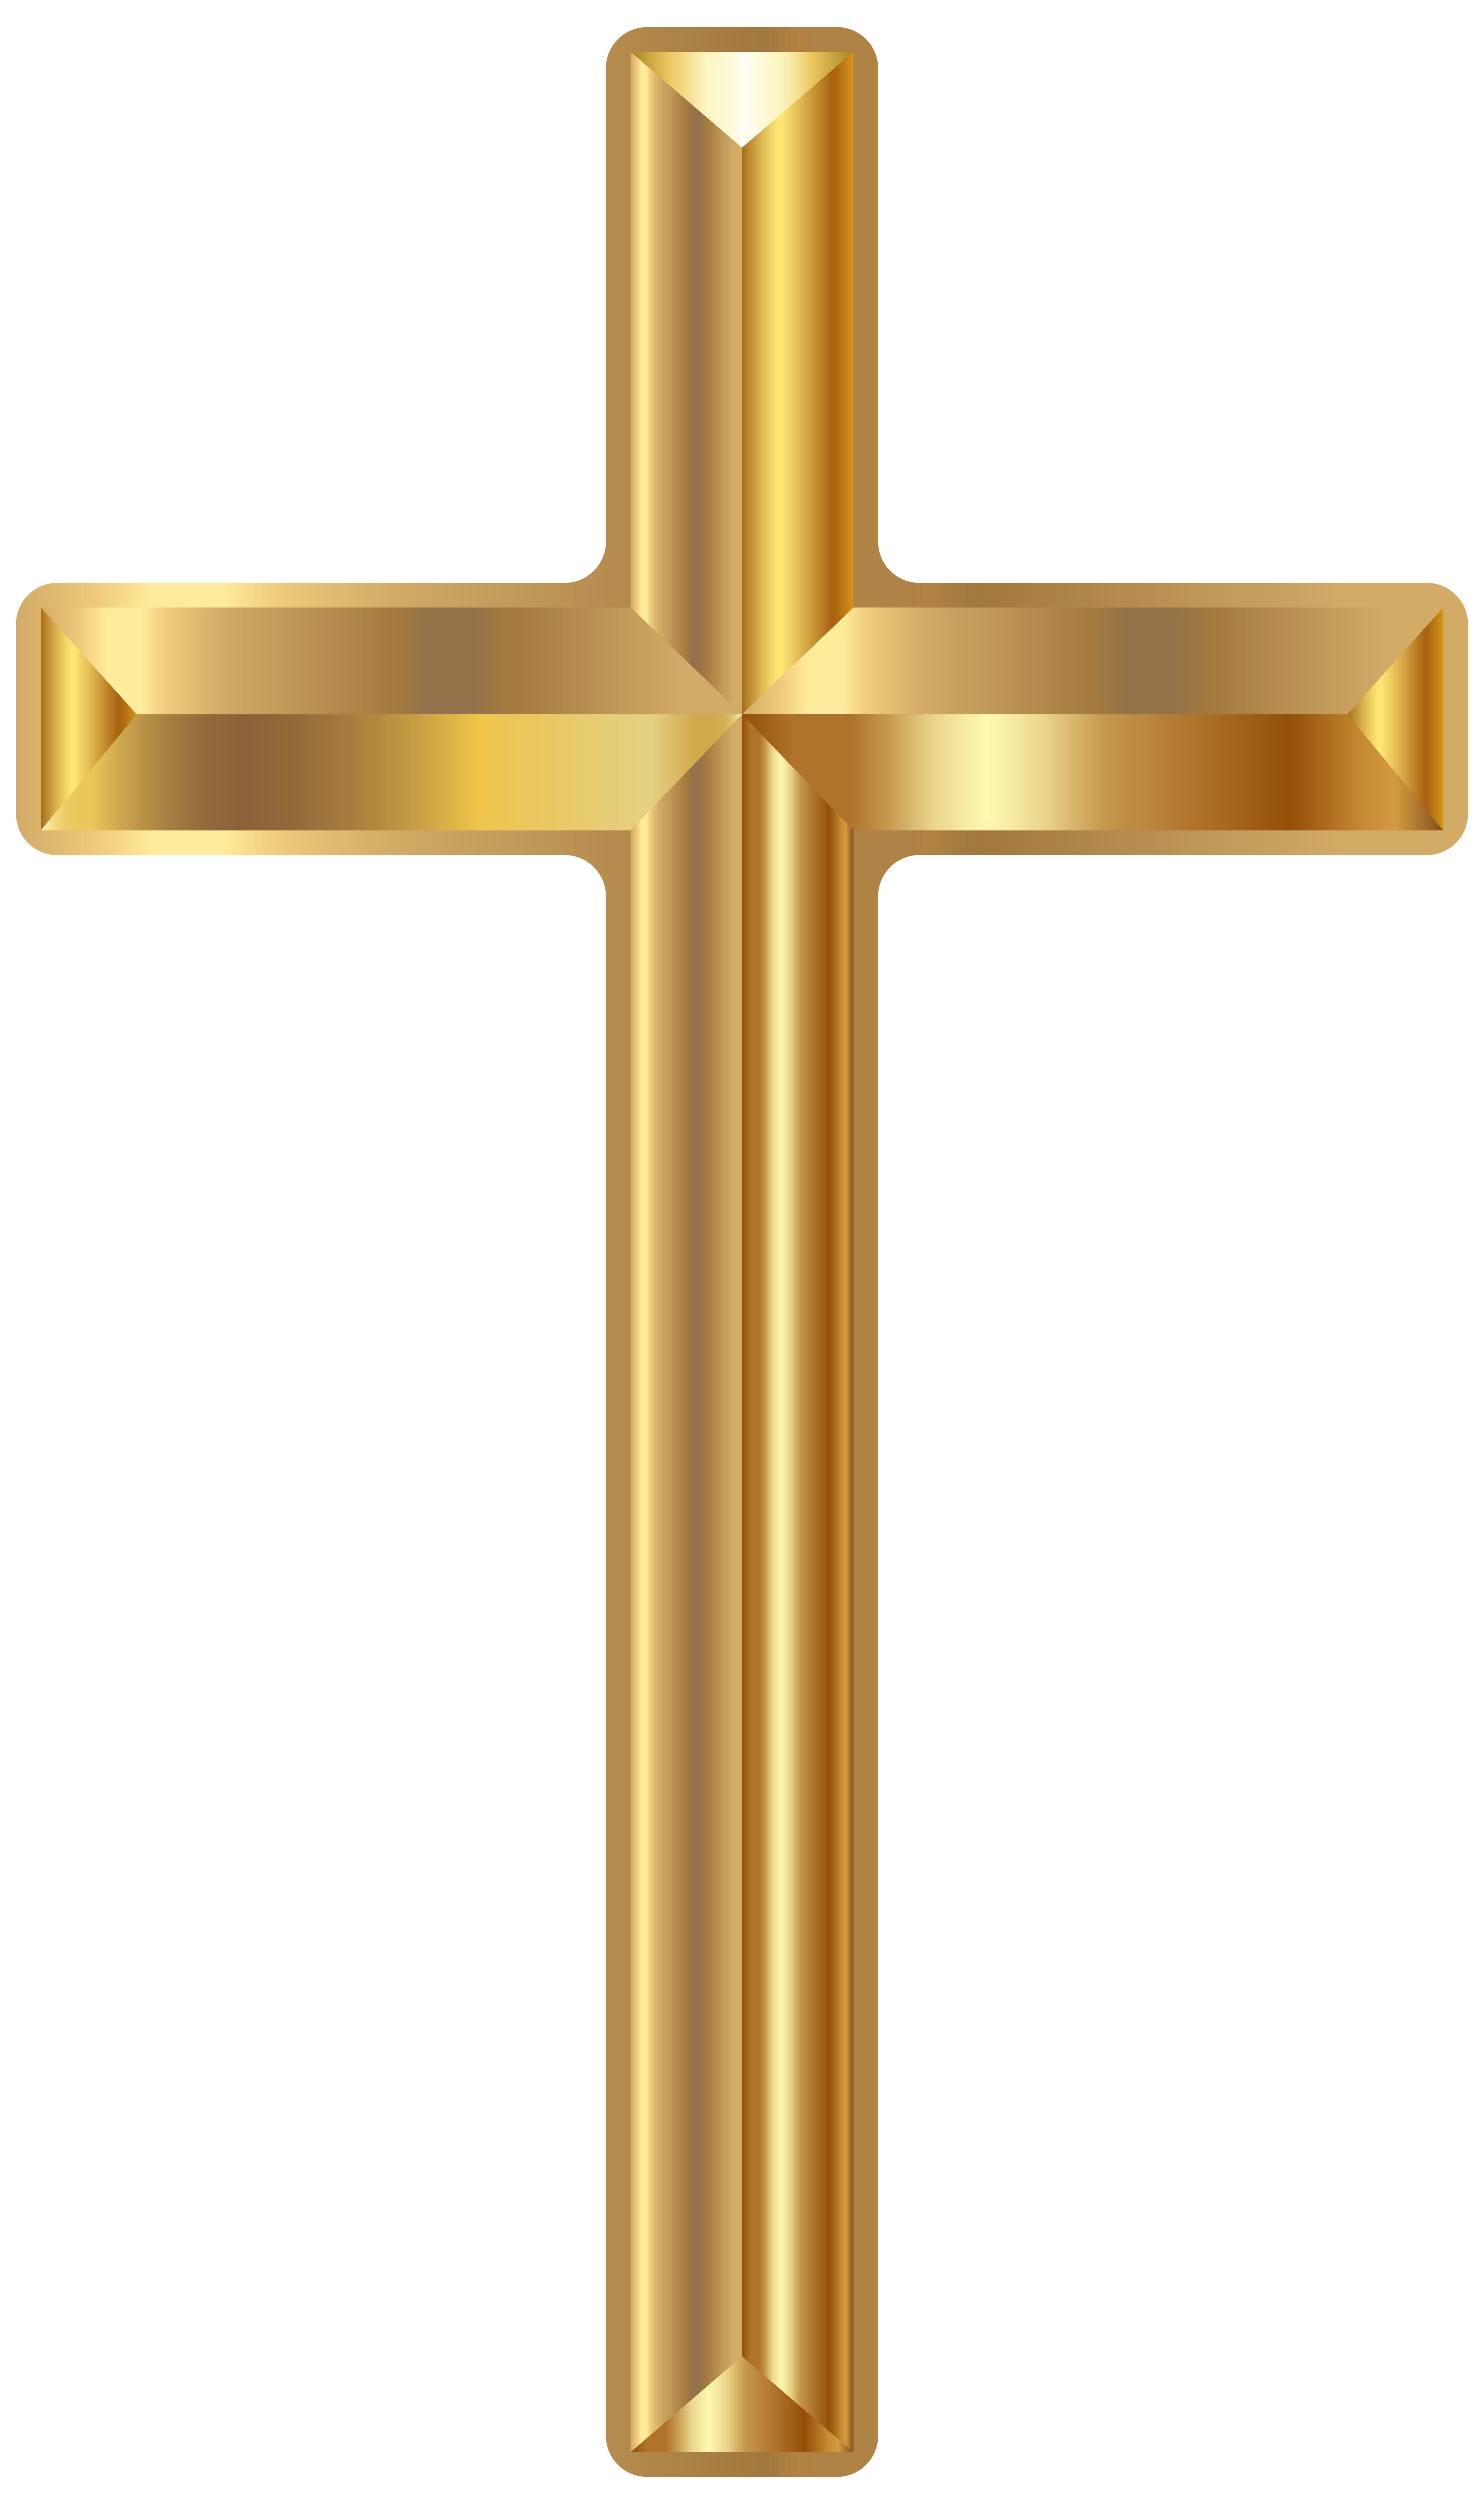 Gold cross baptism clipart banner royalty free Gold Cross PNG Transparent Clip Art Image | Gallery Yopriceville ... banner royalty free